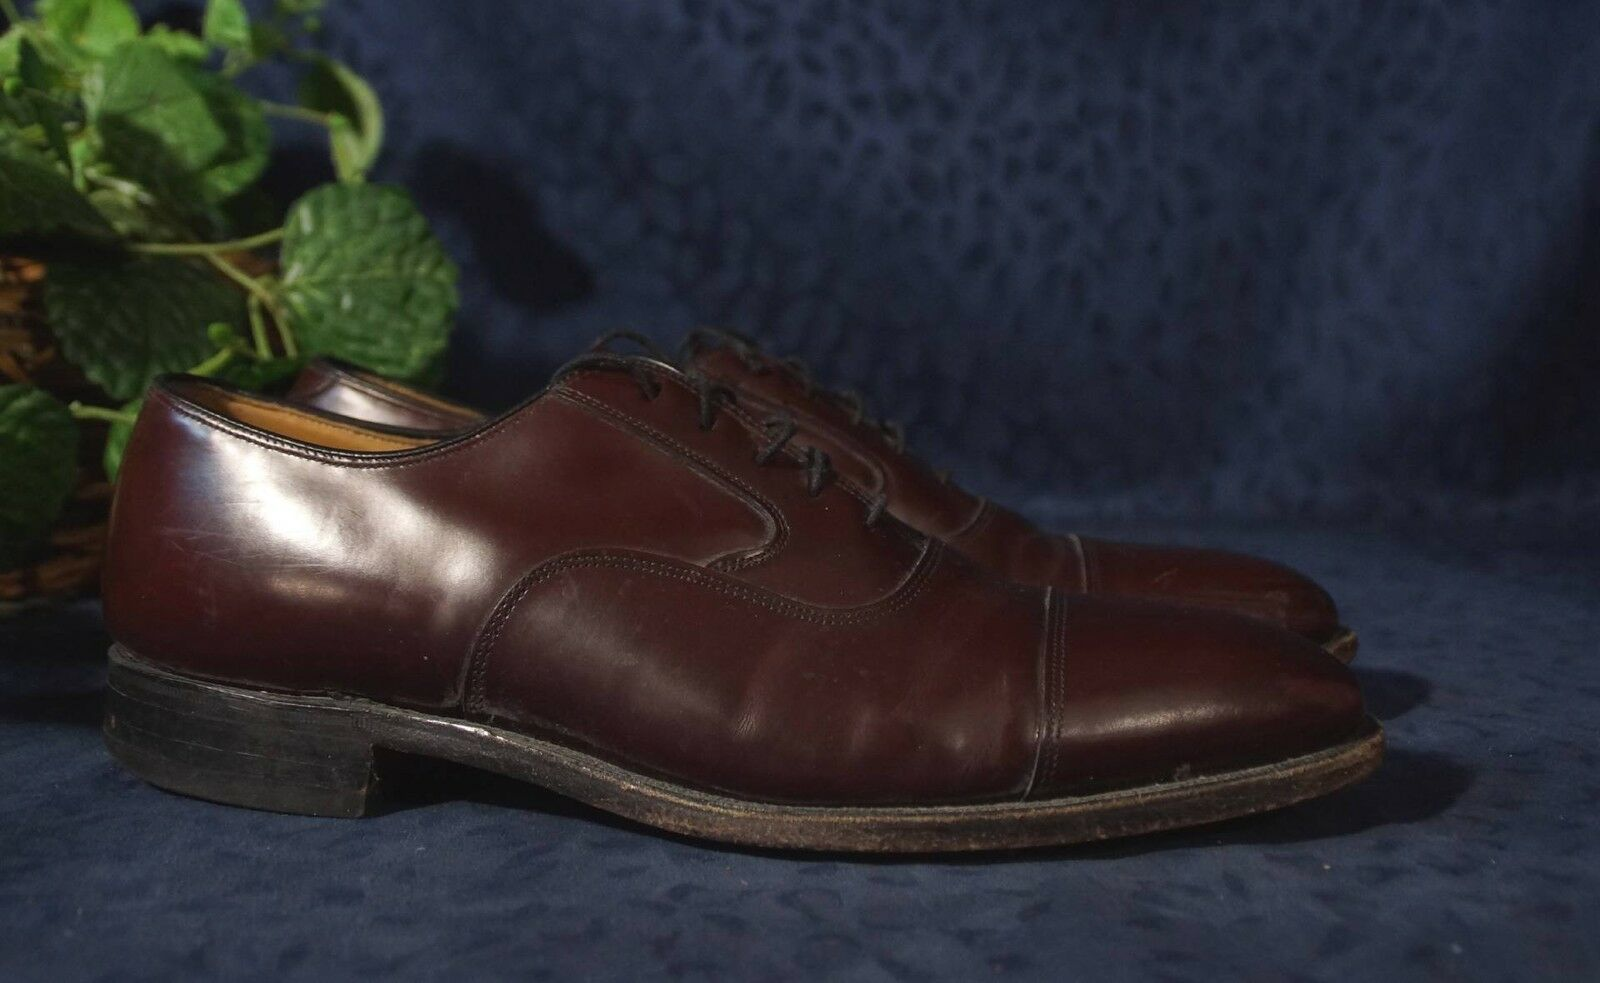 JOHNSTON & MURPHY LIMITED  US Made Burgundy Cap Toe Brogues Oxfords Sz 10 B 2A